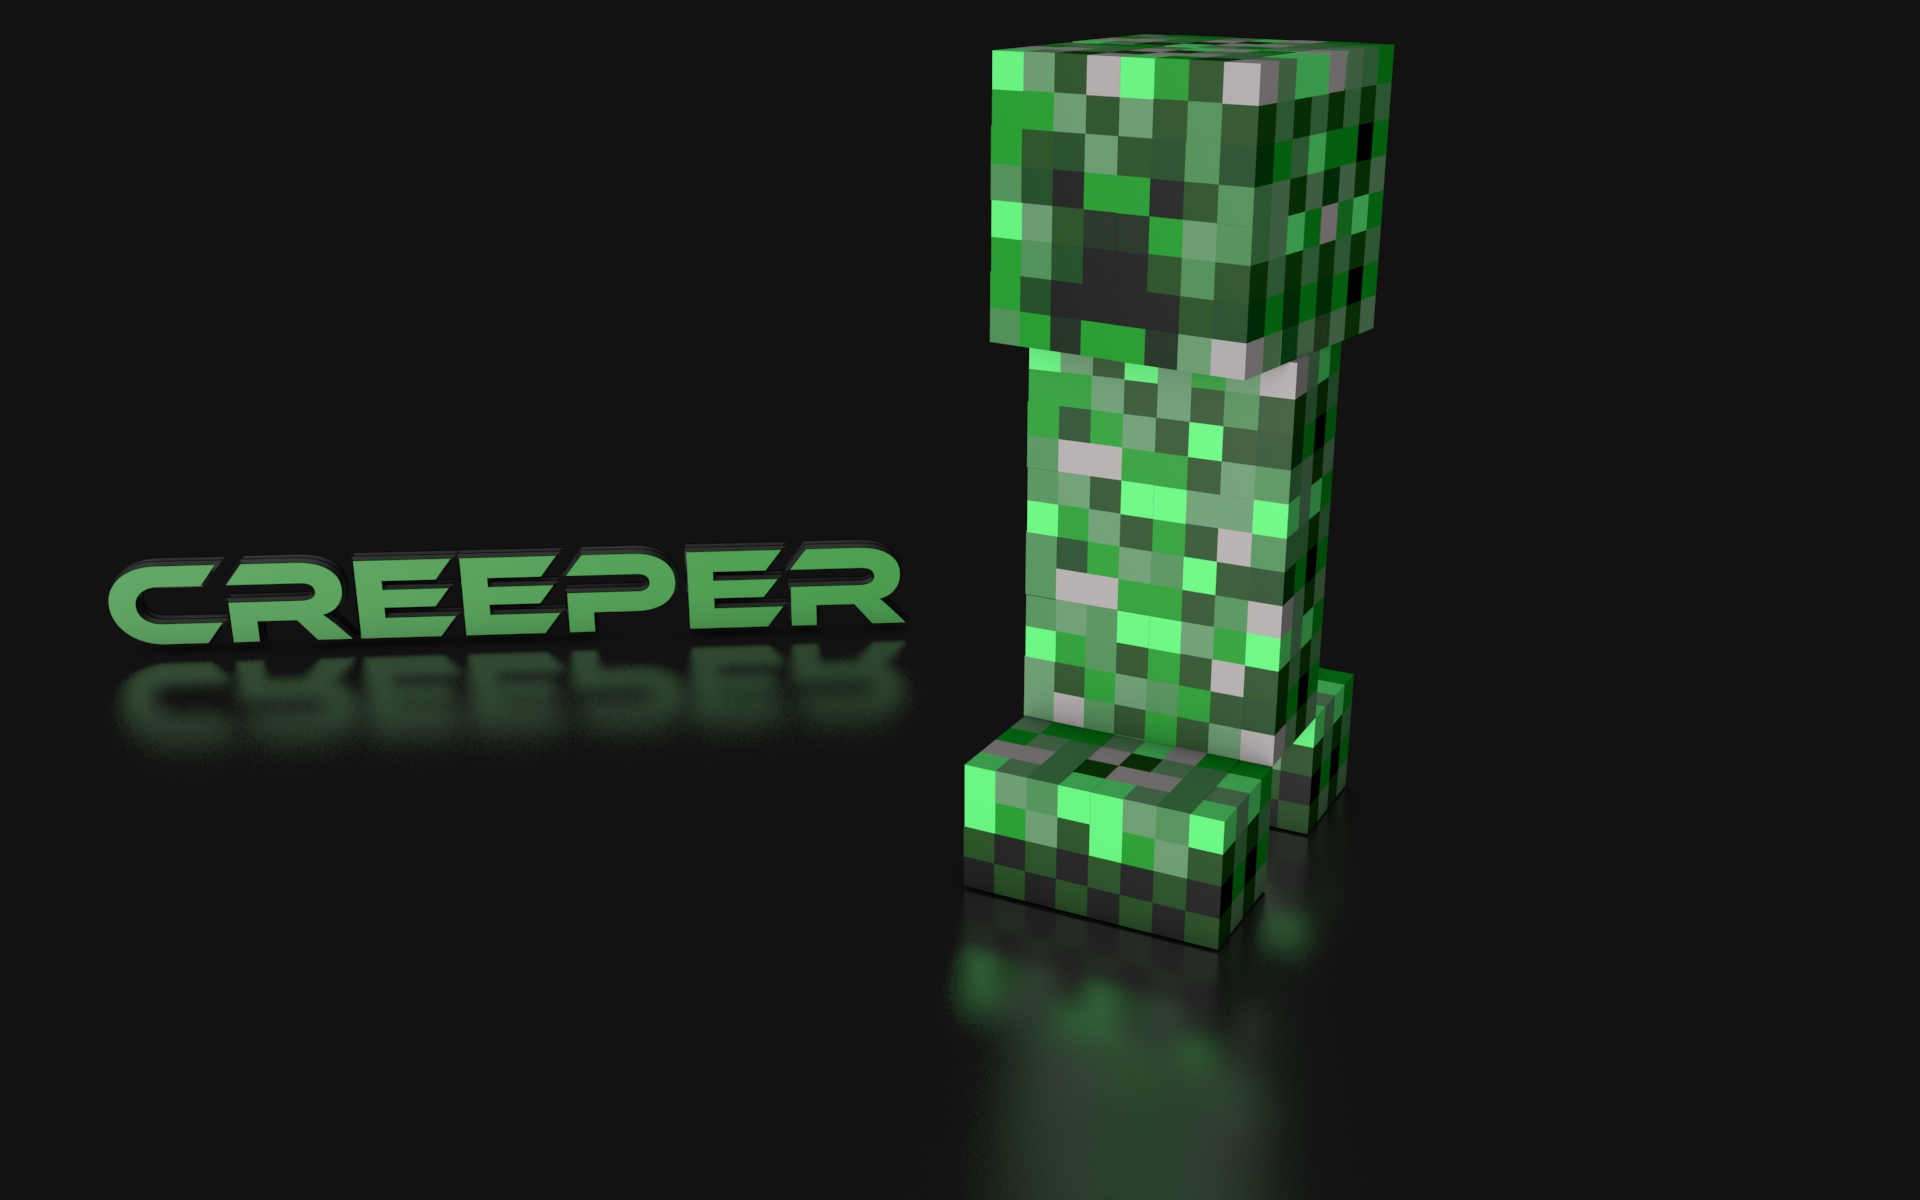 Free Download Creeper Minecraft Wallpaper Creepers Are Terrible 1920x1200 For Your Desktop Mobile Tablet Explore 47 Cute Creeper Wallpaper Cute Creeper Wallpaper Creeper Backgrounds Minecraft Creeper Wallpaper